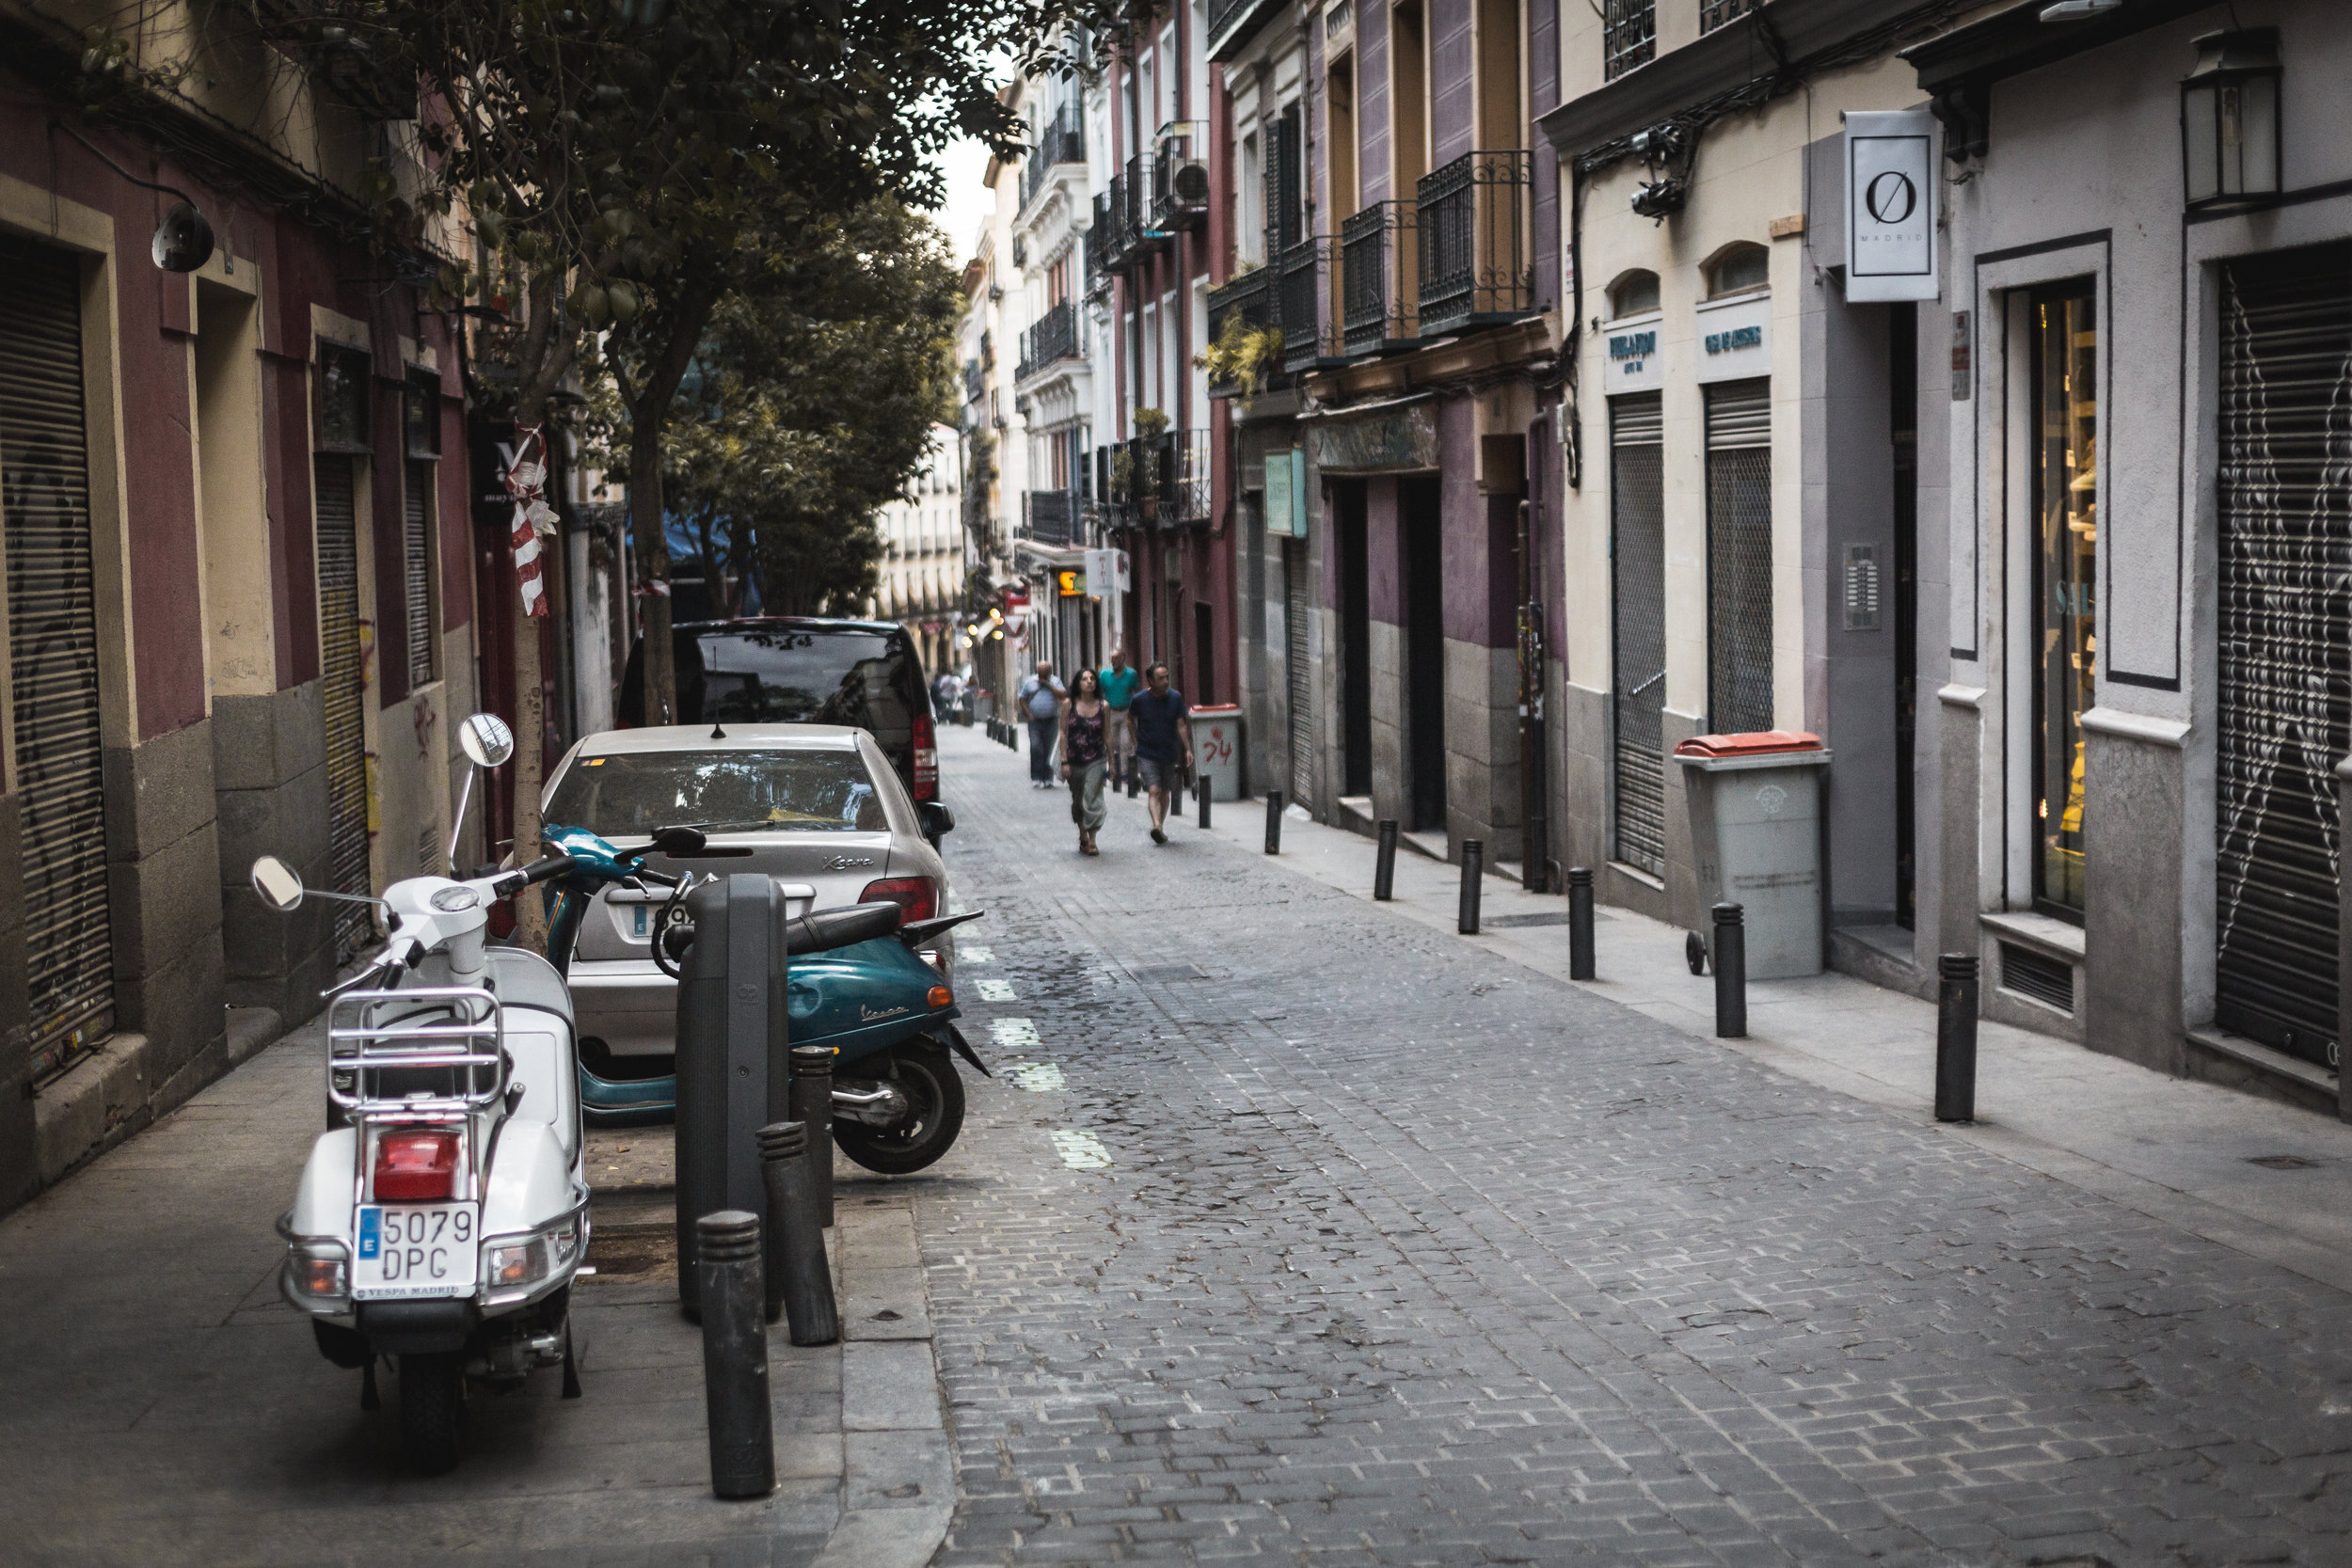 Narrow streets and motorcycles are two features of El Centro of Madrid.